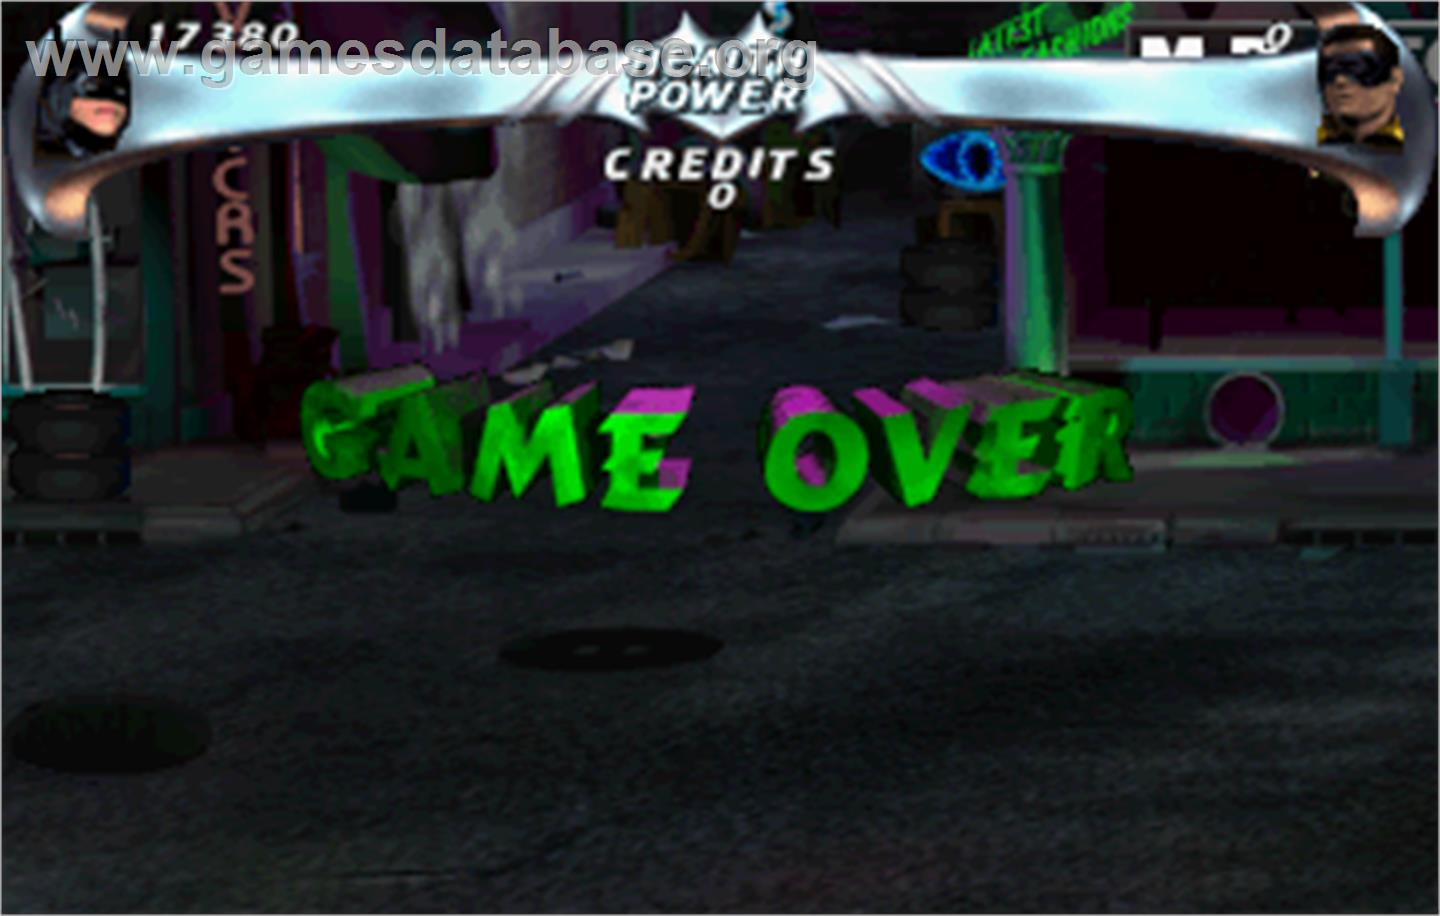 Batman Forever - Arcade - Artwork - Game Over Screen